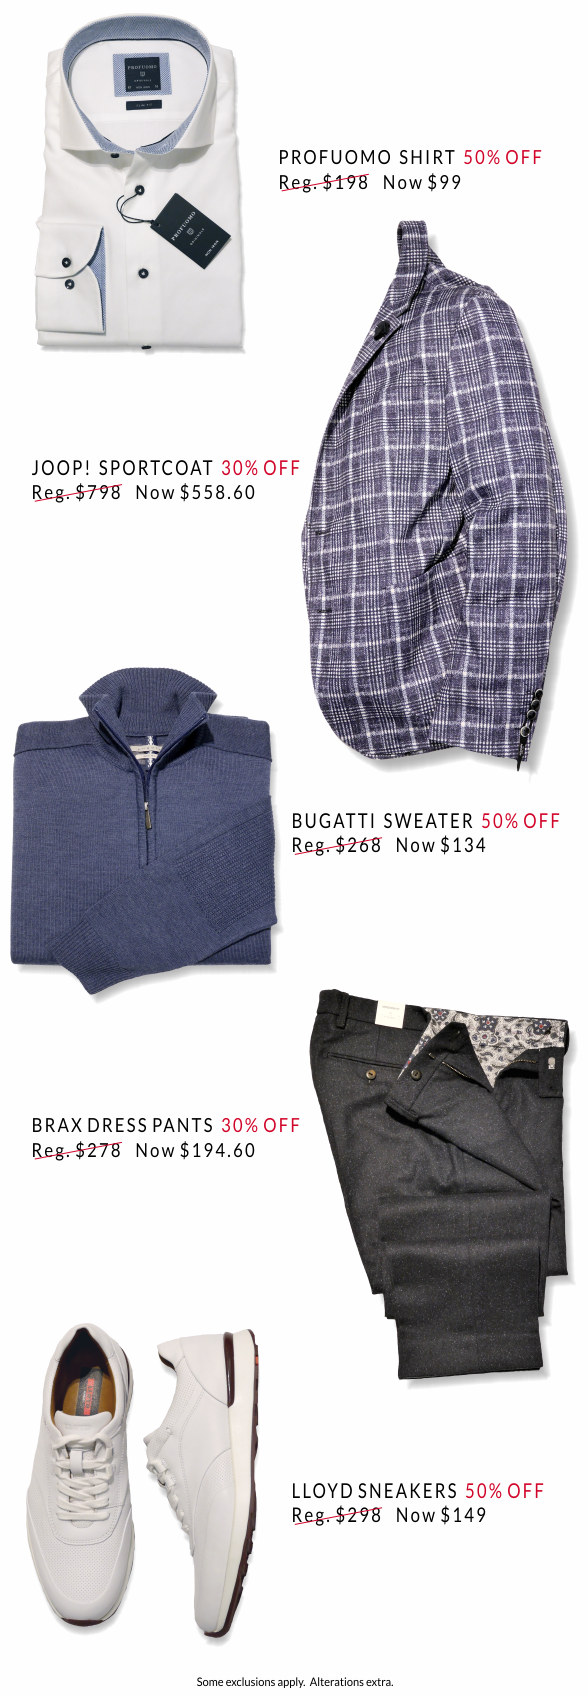 Images of shirt, sportcoat, sweater, pants, shoes with savings of 30 to 50 percent